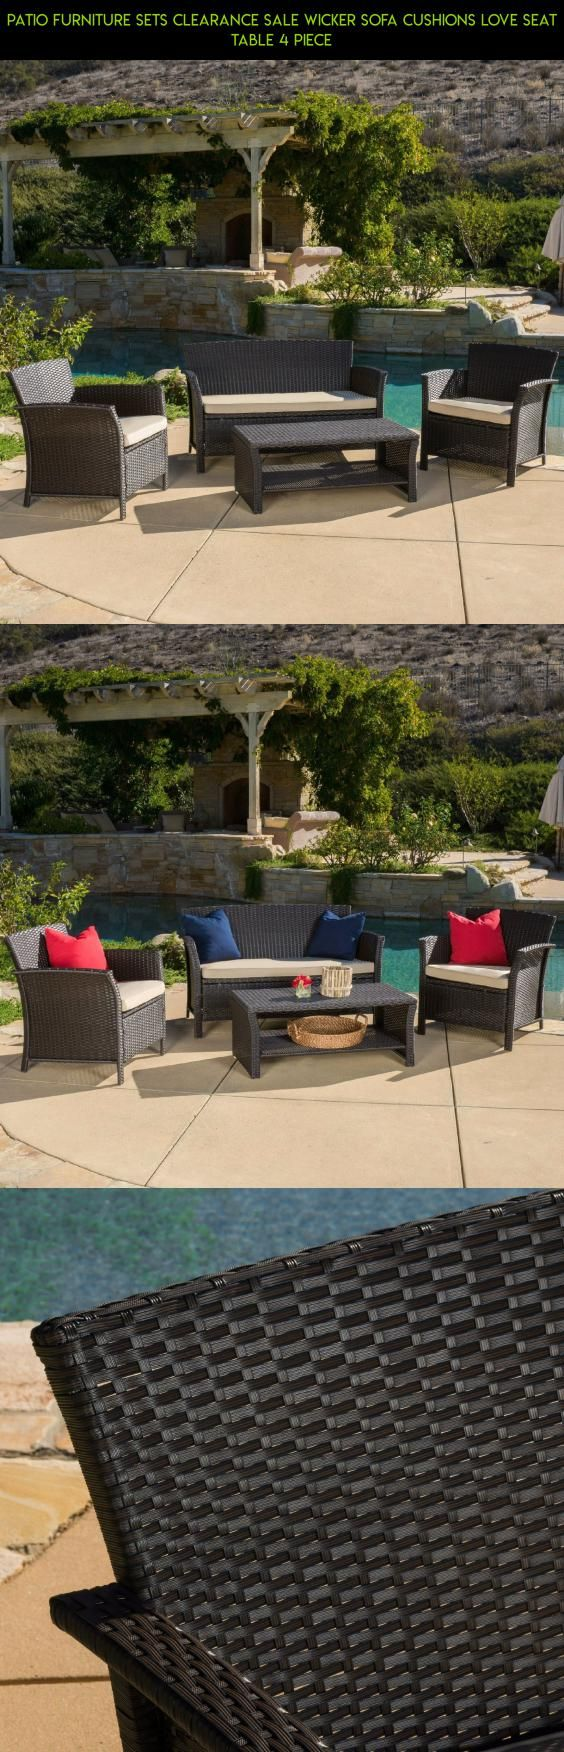 Patio Furniture Sets Clearance Sale Wicker Sofa Cushions Love Seat Table 4  Piece  tech. 25  best ideas about Patio Furniture Clearance Sale on Pinterest